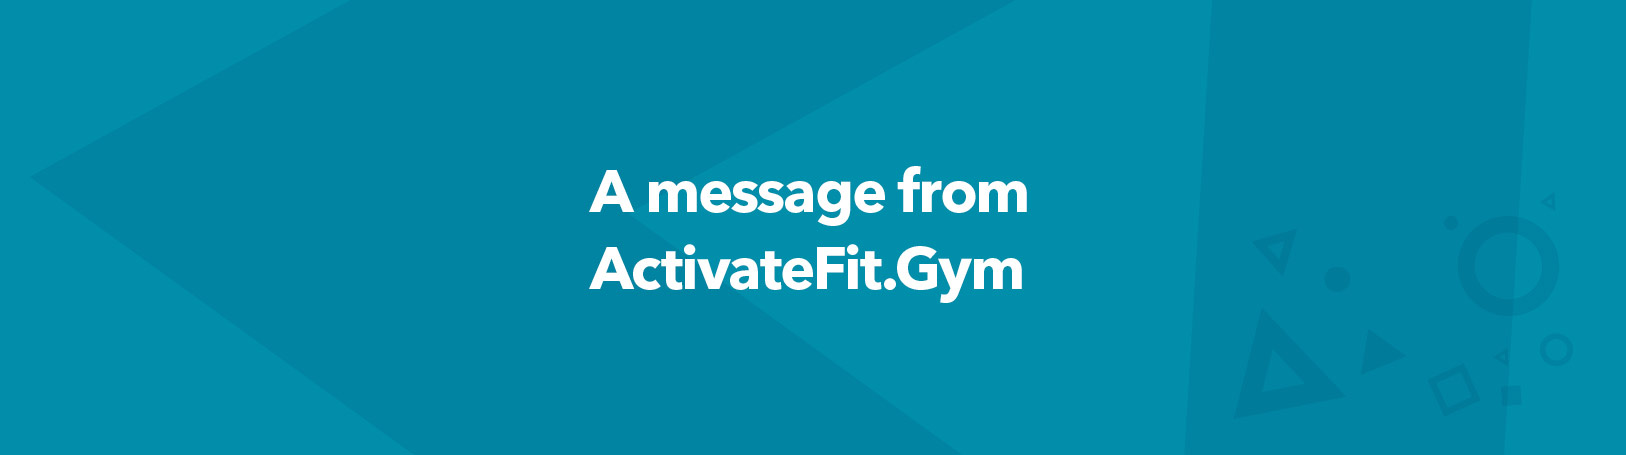 A message from ActivateFit.Gym